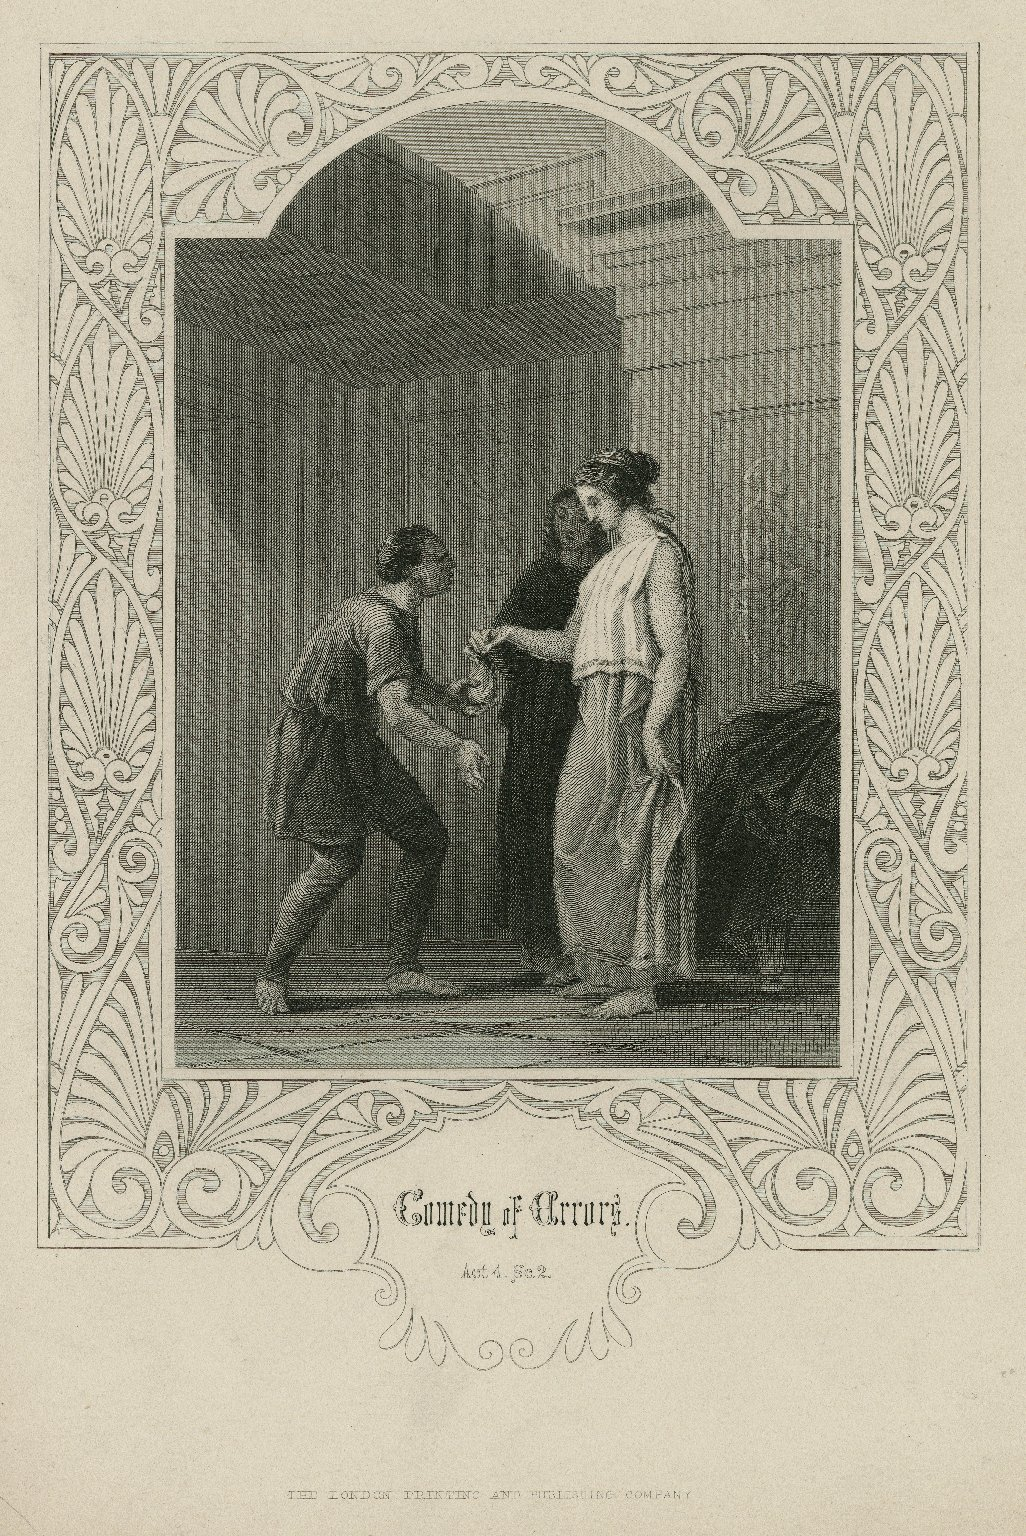 Comedy of errors, act 4, sc. 2 [graphic] / [engraved by W. Finden, from the original painting by H. Warren].